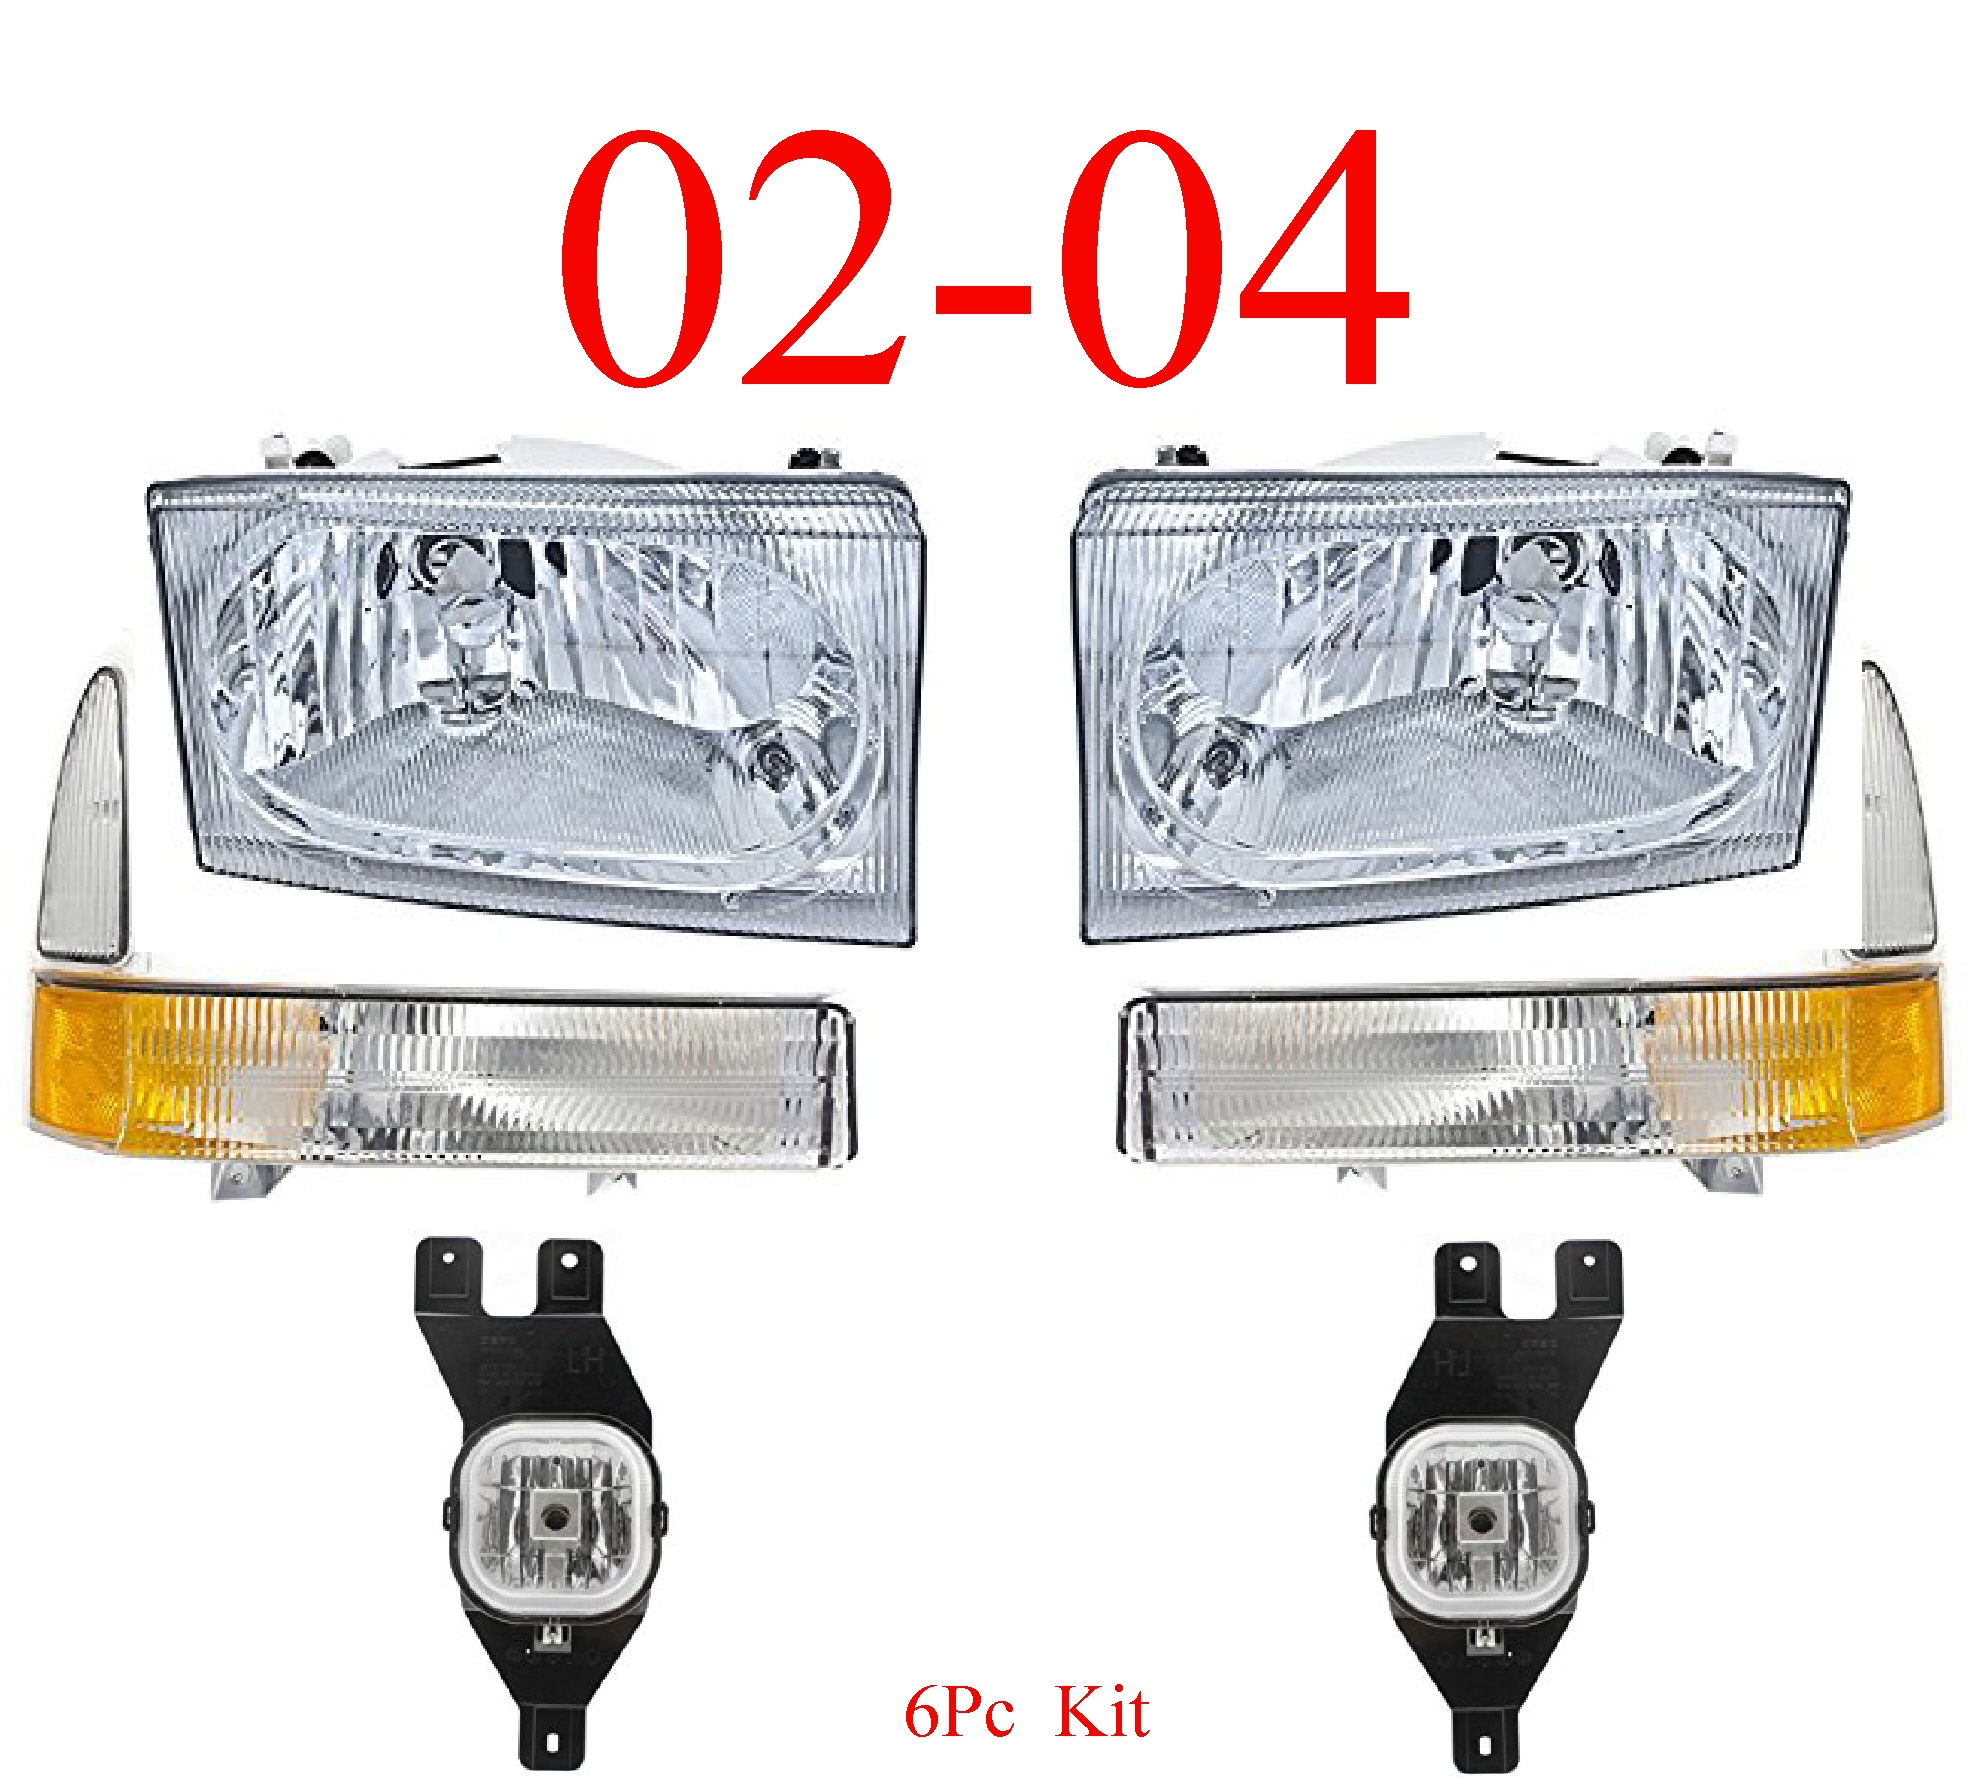 02-04 Ford Excursion 6Pc Head, Park & Fog Light Kit